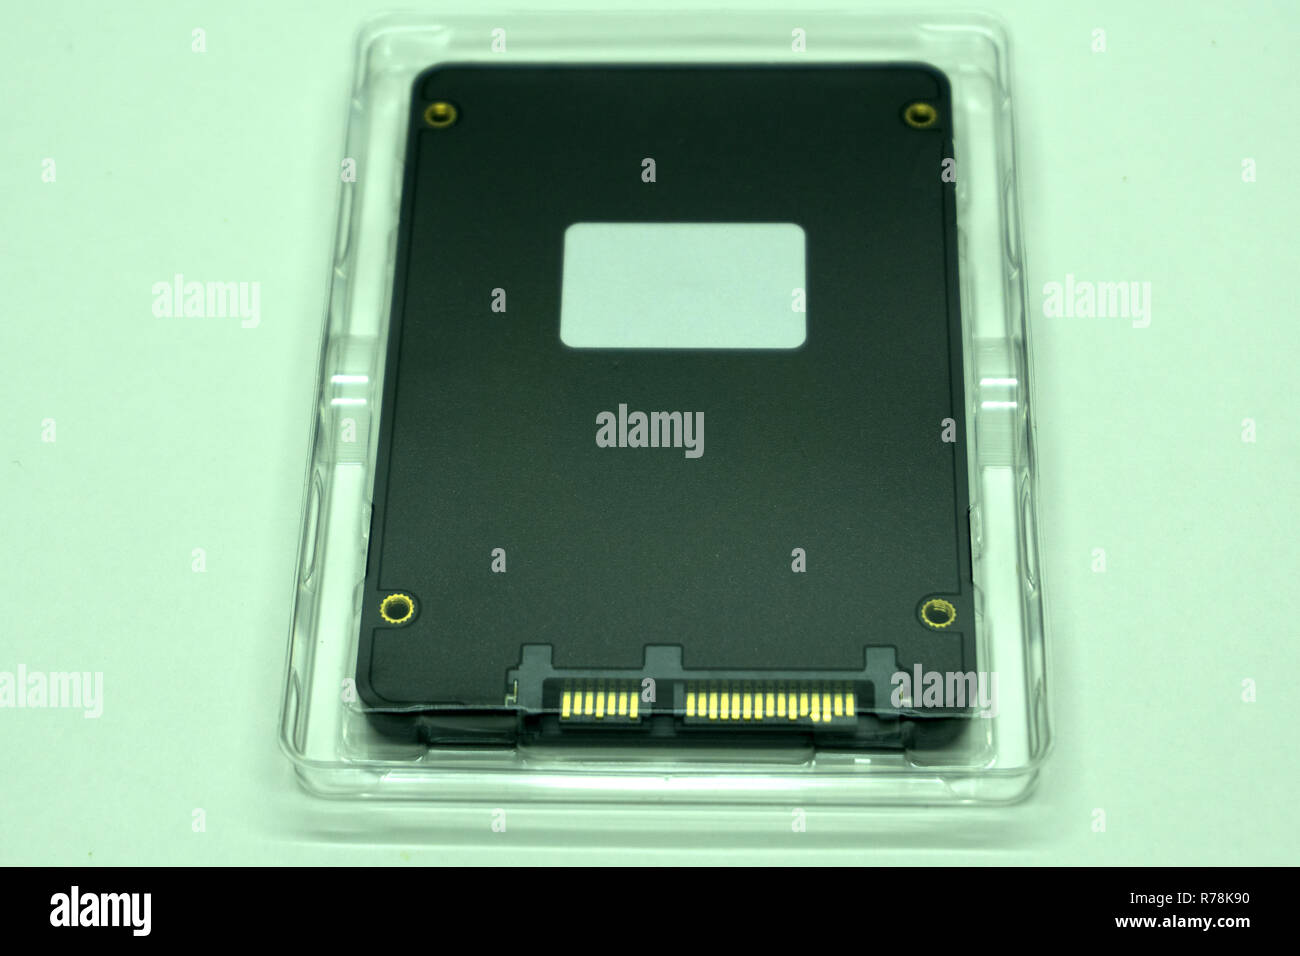 Solid State Drive SSD icon interface laptop - Stock Image